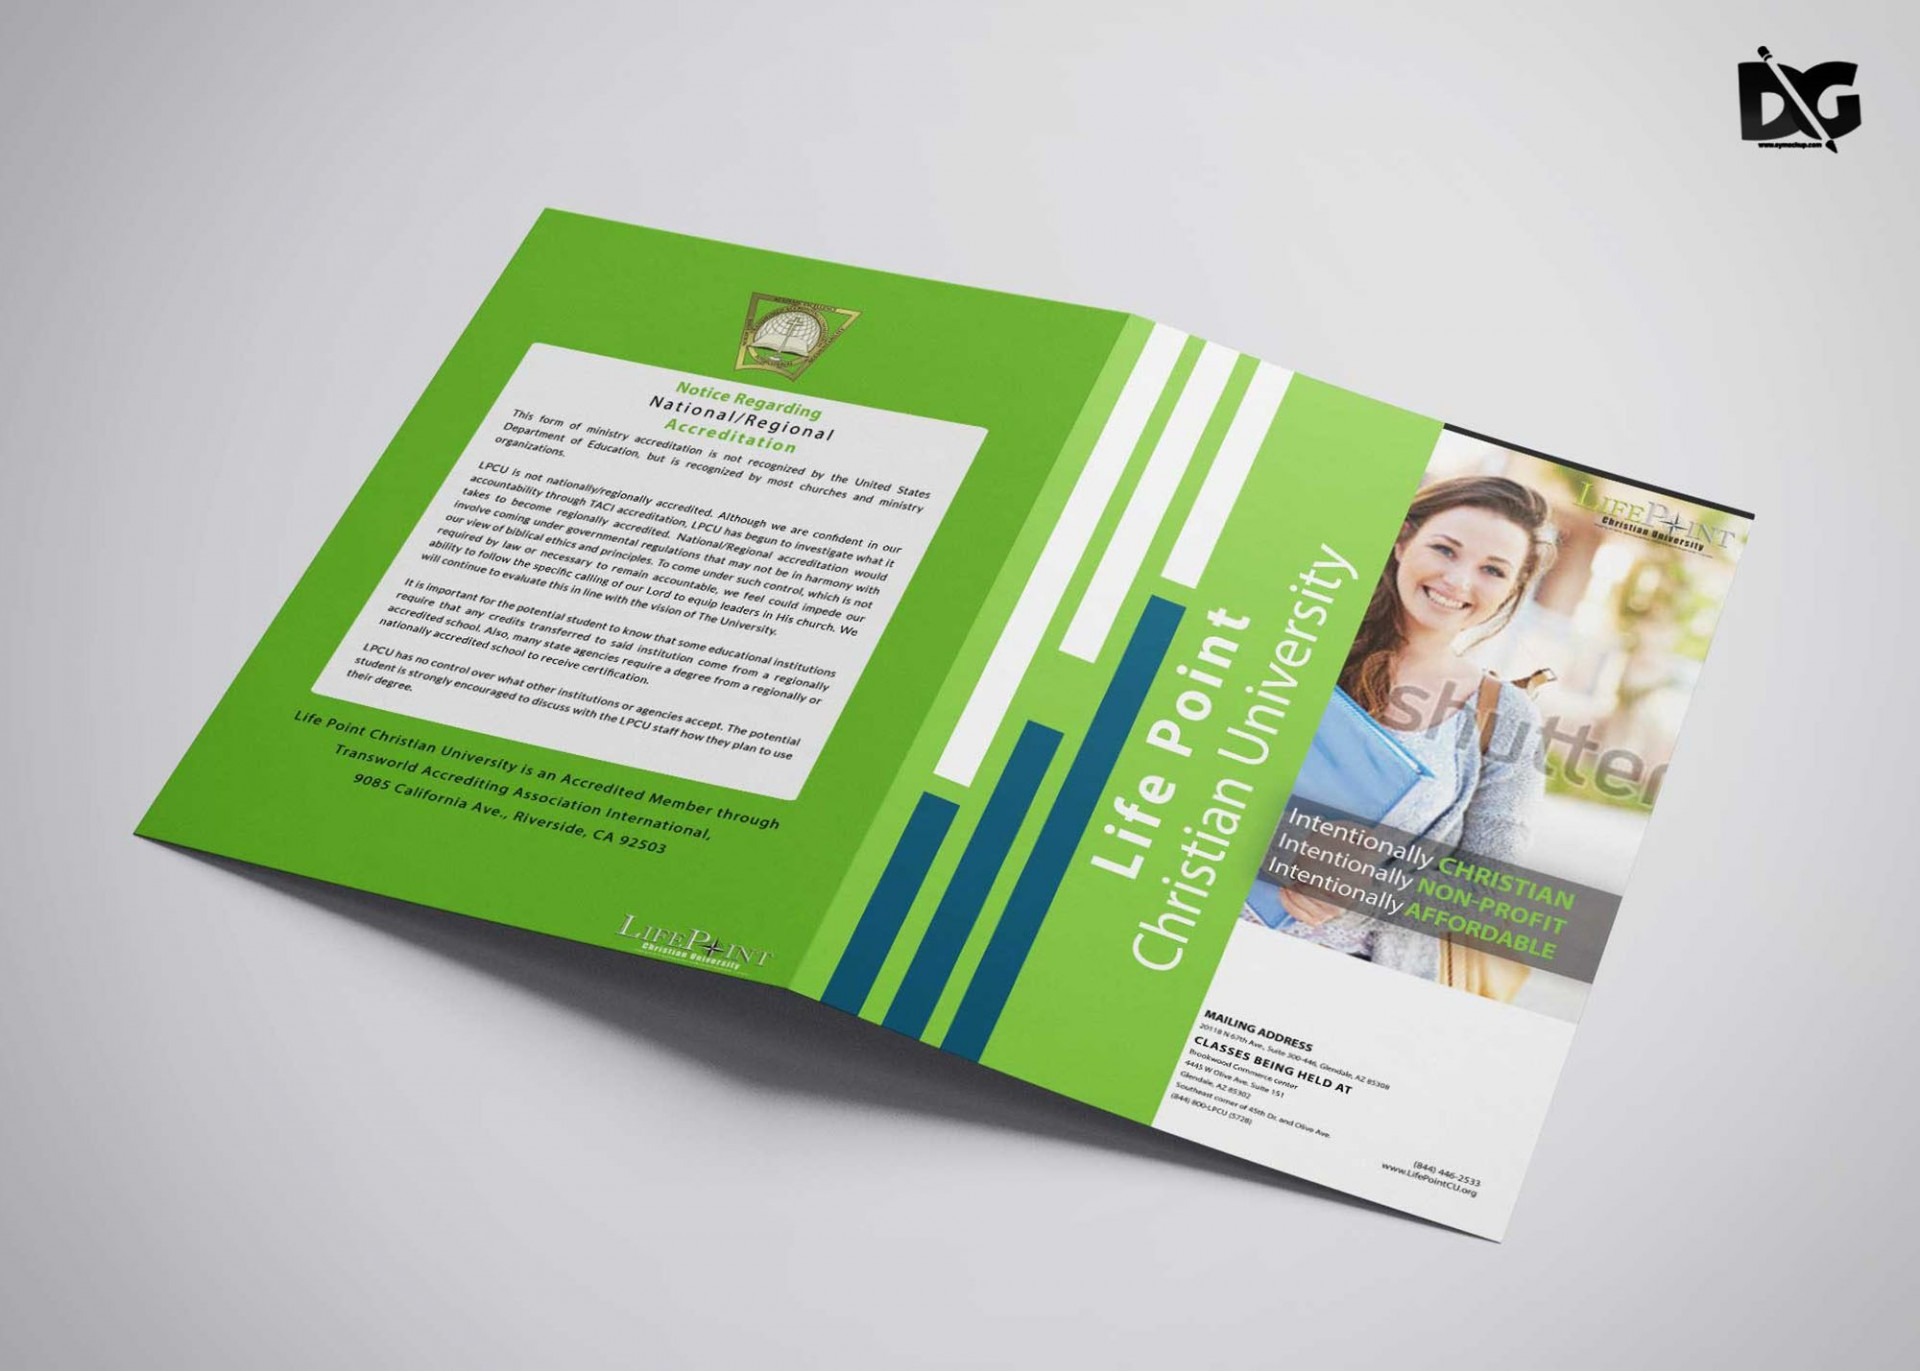 007 Unbelievable Brochure Template Free Download Photo  Microsoft Publisher Corporate Psd For Adobe Illustrator1920